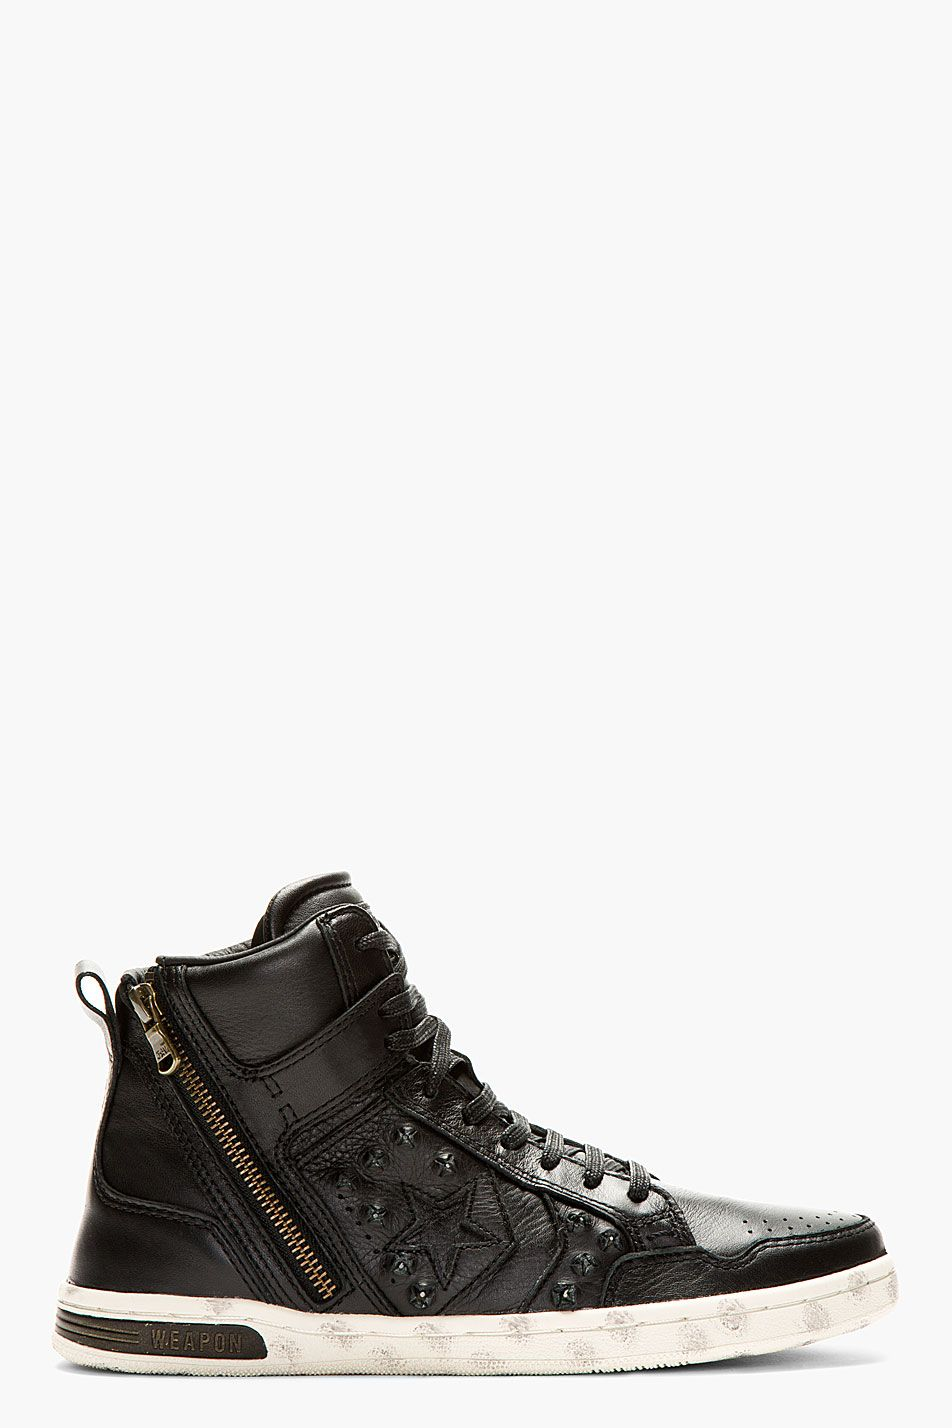 converse weapon hi leather